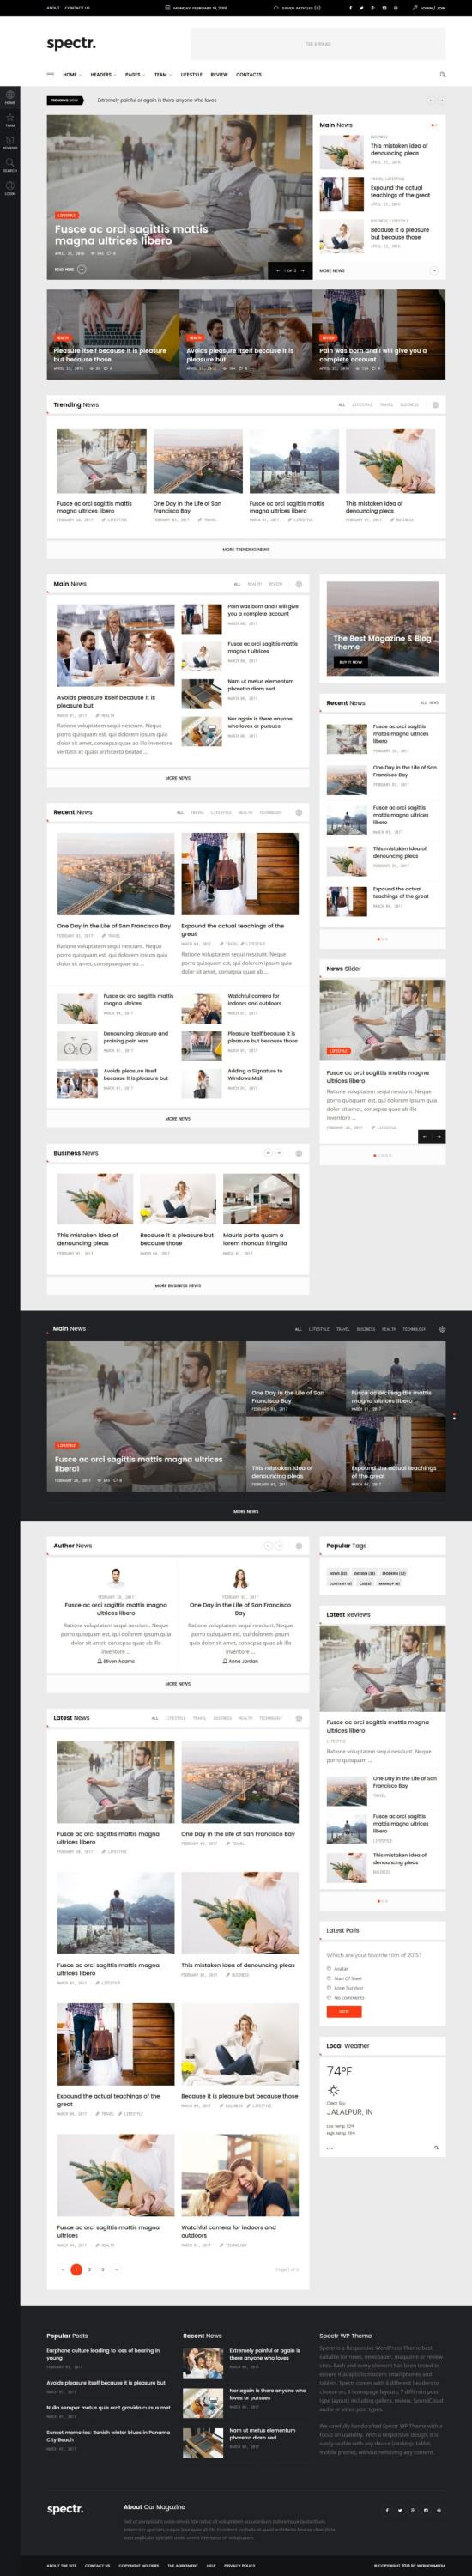 Spectr WordPress Theme